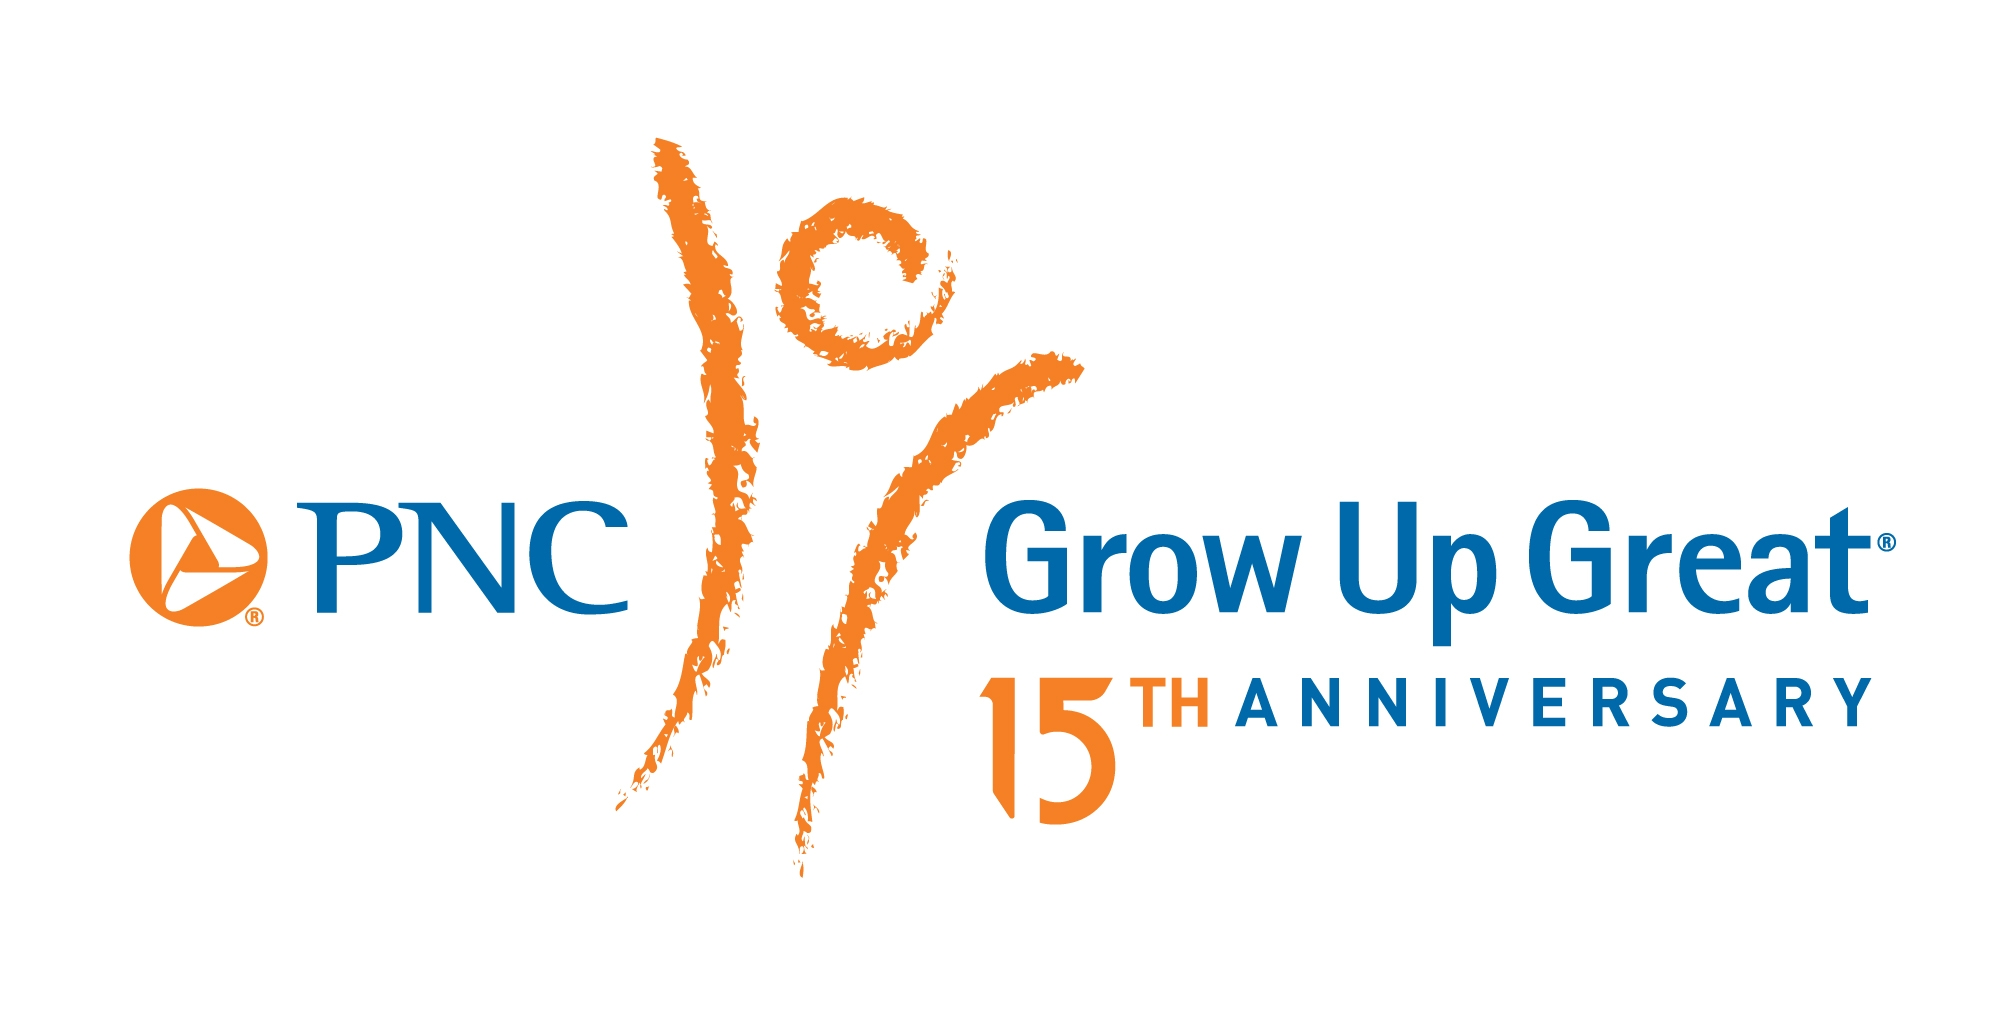 PNC 15th Anniversary logo (opens in new window)